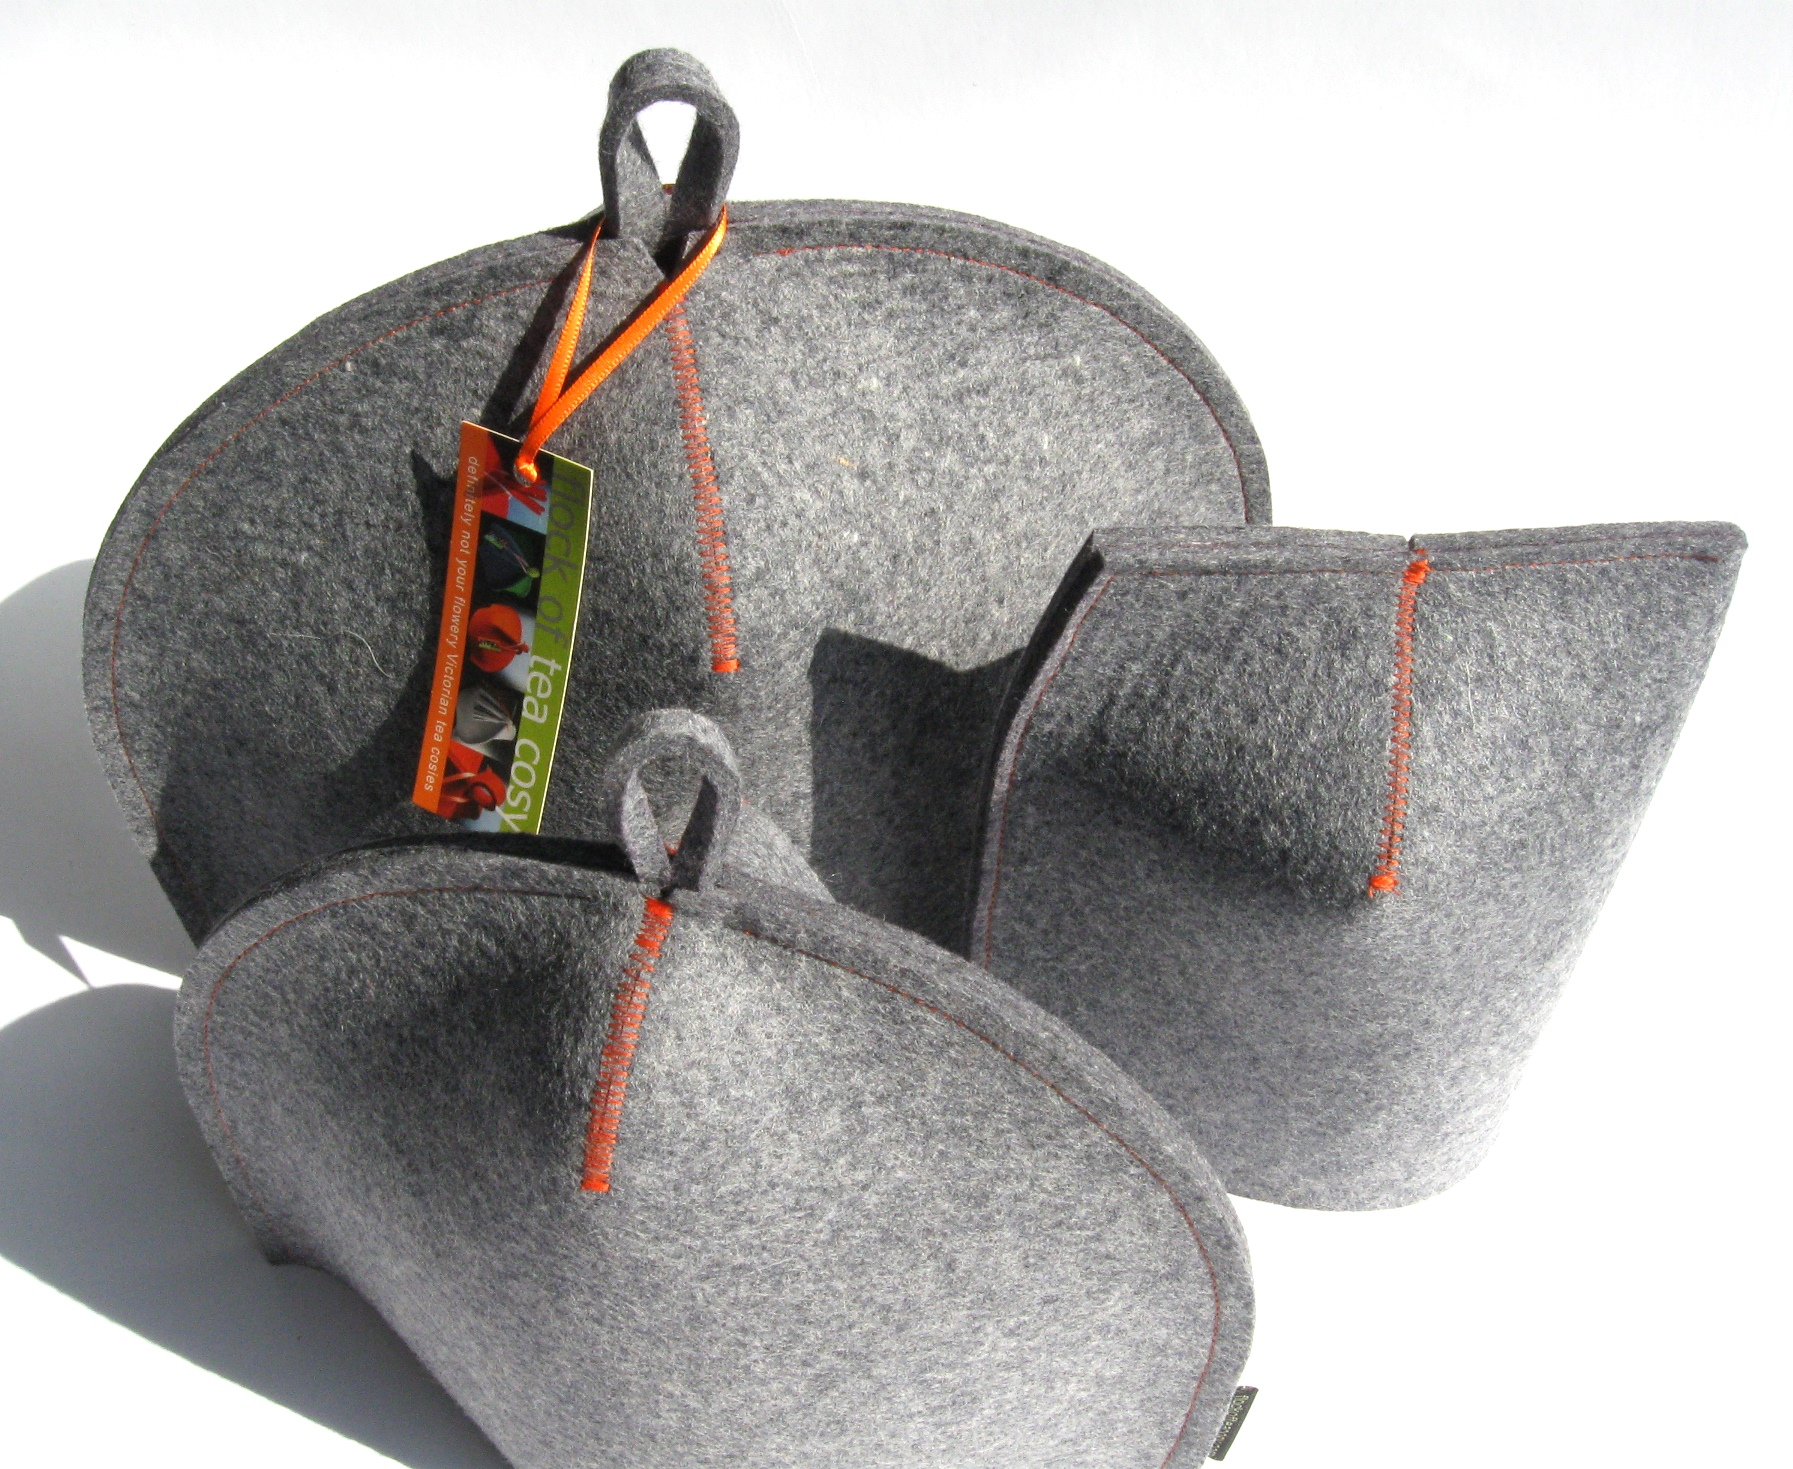 Teaware trio in industrial wool felt by Flock of Tea Cosy